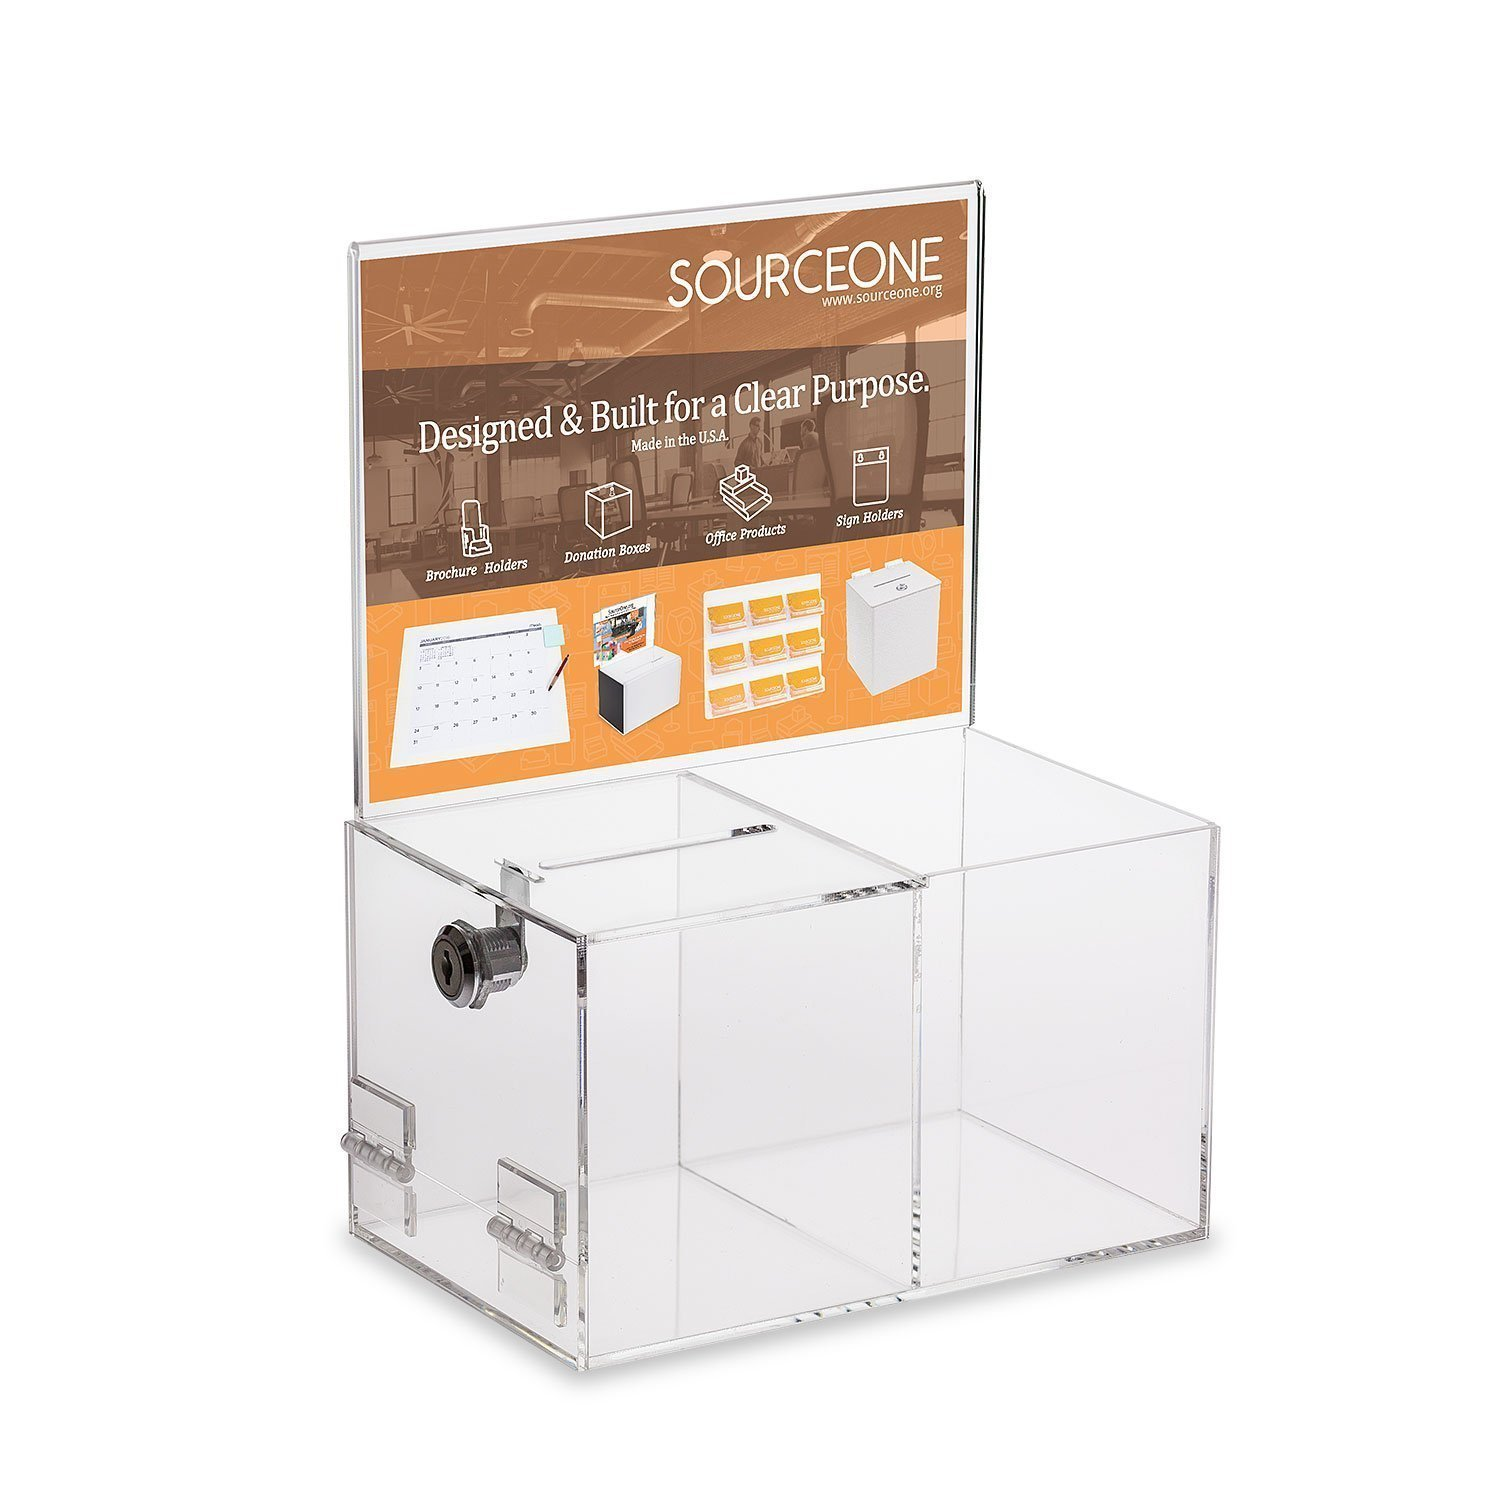 Source One Deluxe Donation Box - Collection Box - Tip Container - With Two Compartments for Give & Take- Treat or Prize Compartment (1-Pack)